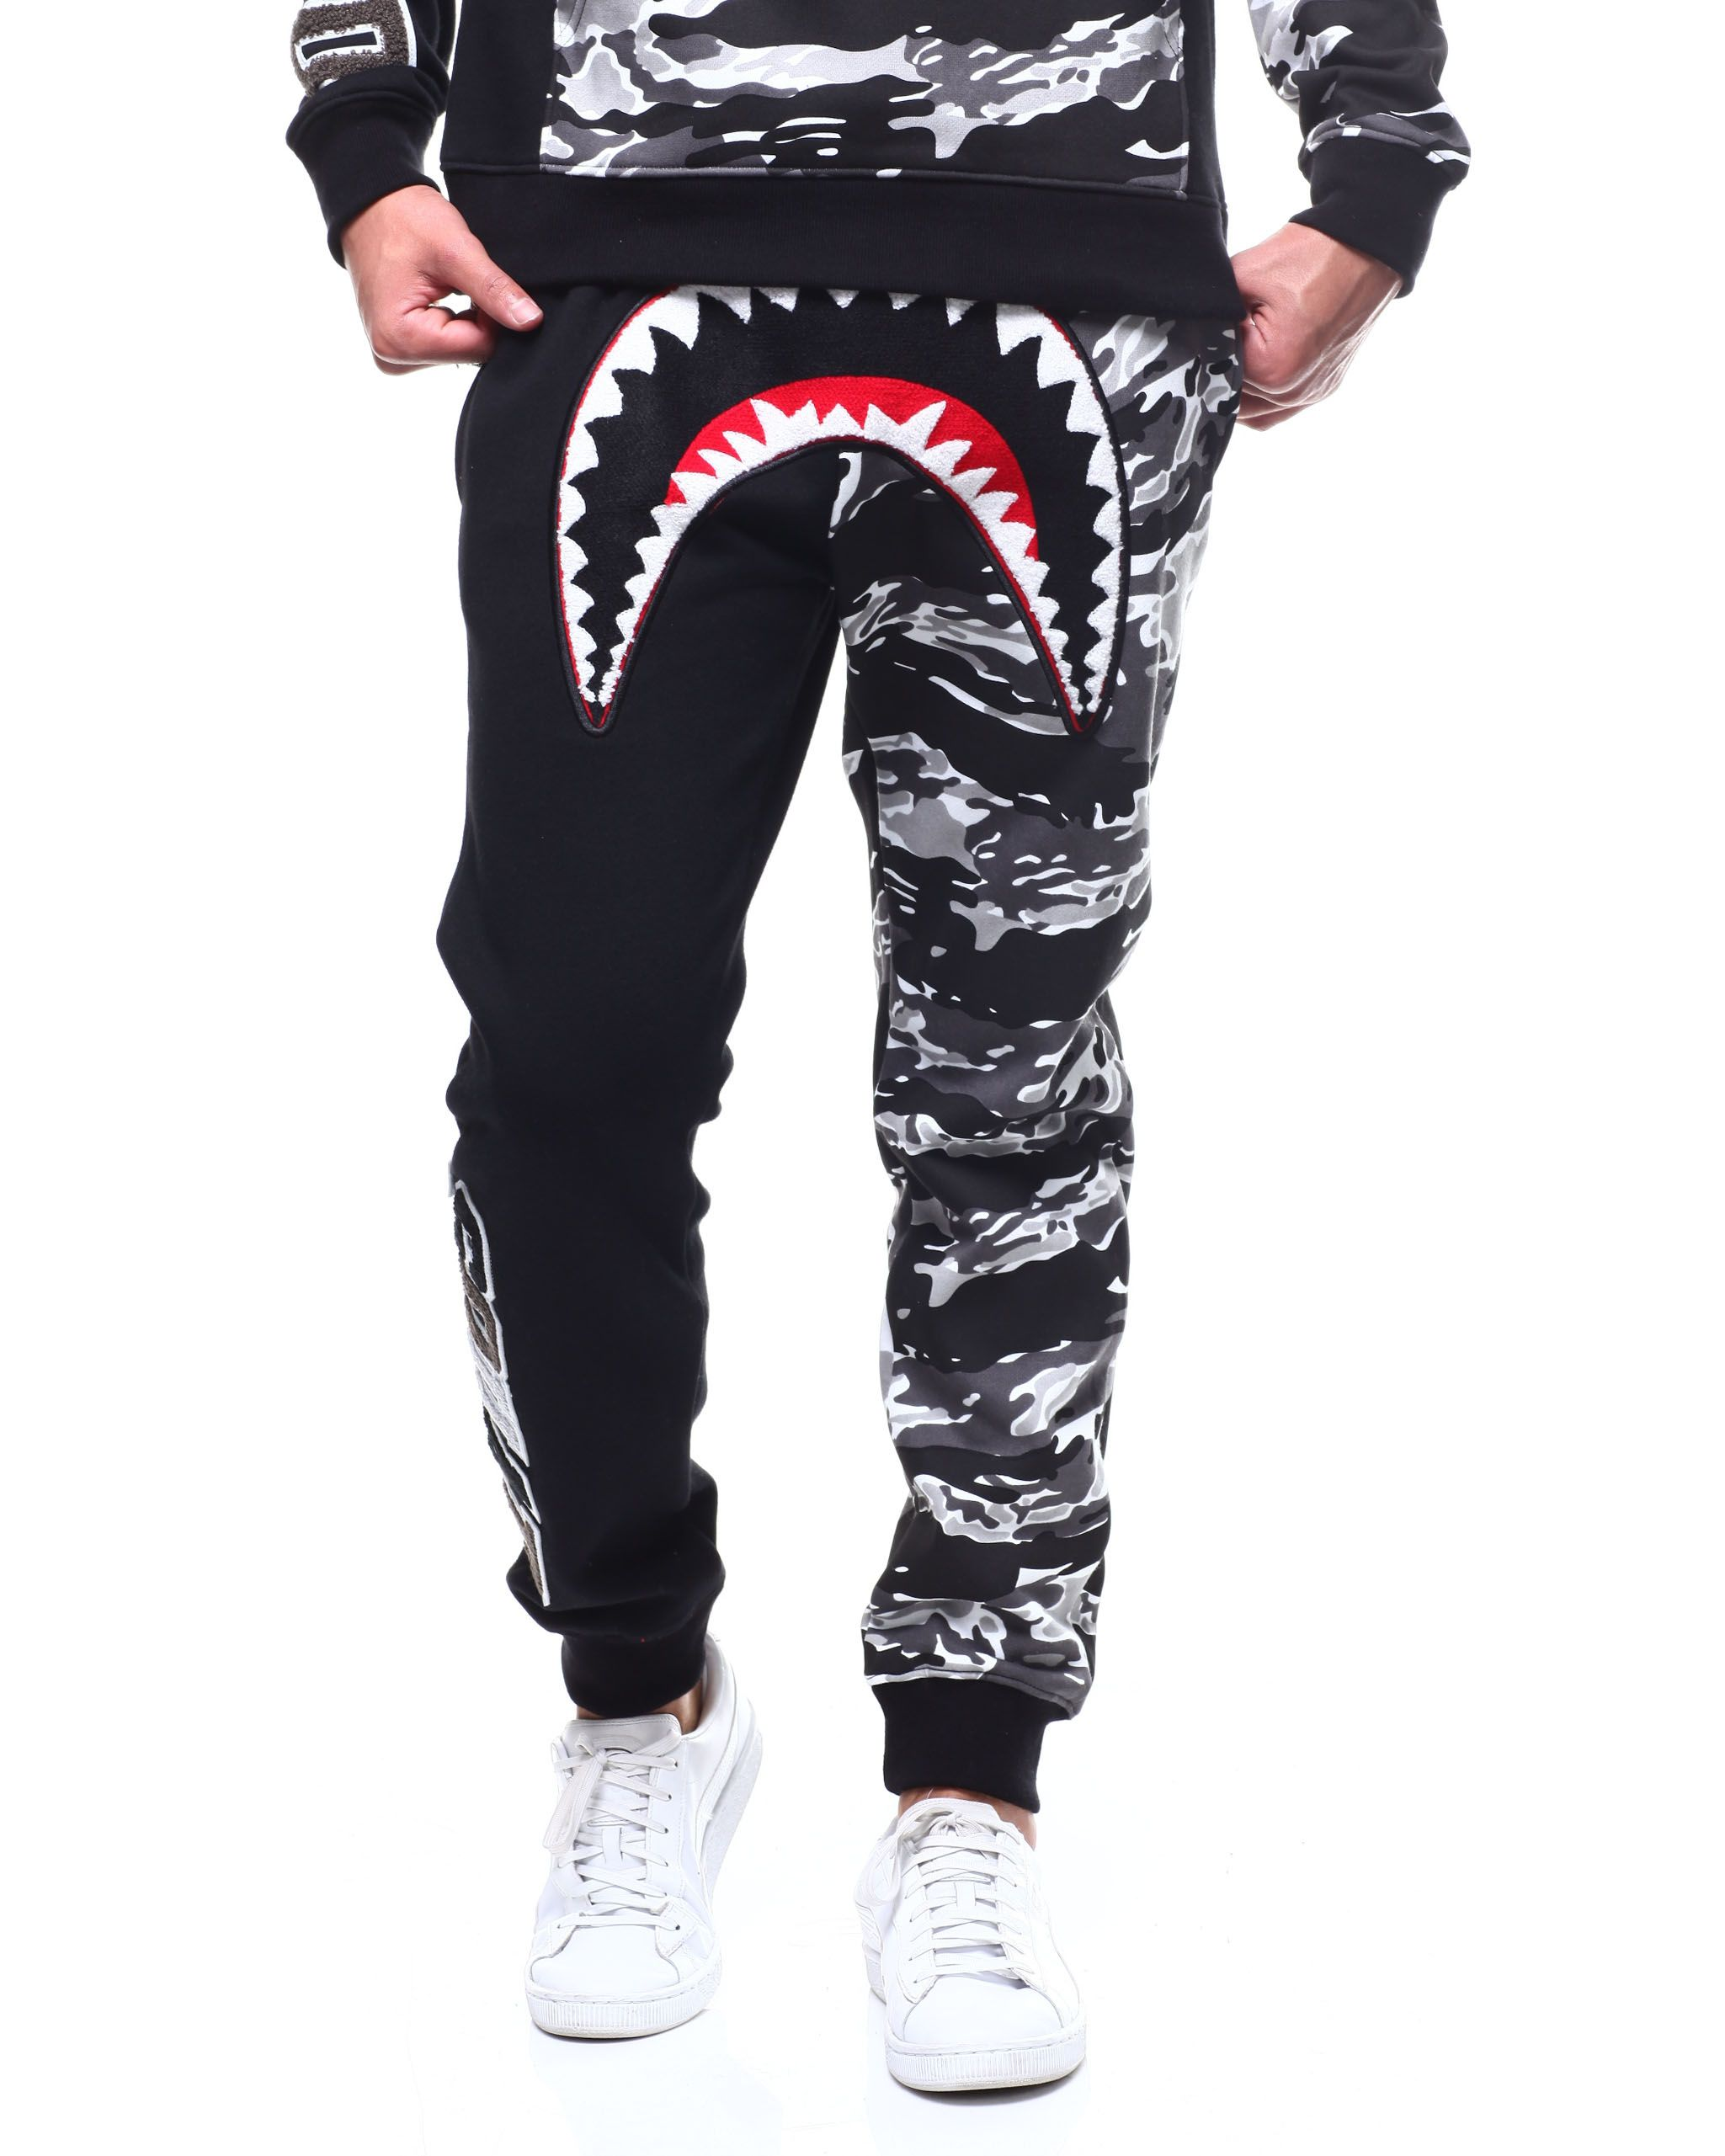 27d579702 Tiger Shark Mouth Sweatpant Men's Jeans & Pants from Hudson NYC at  DrJays.com